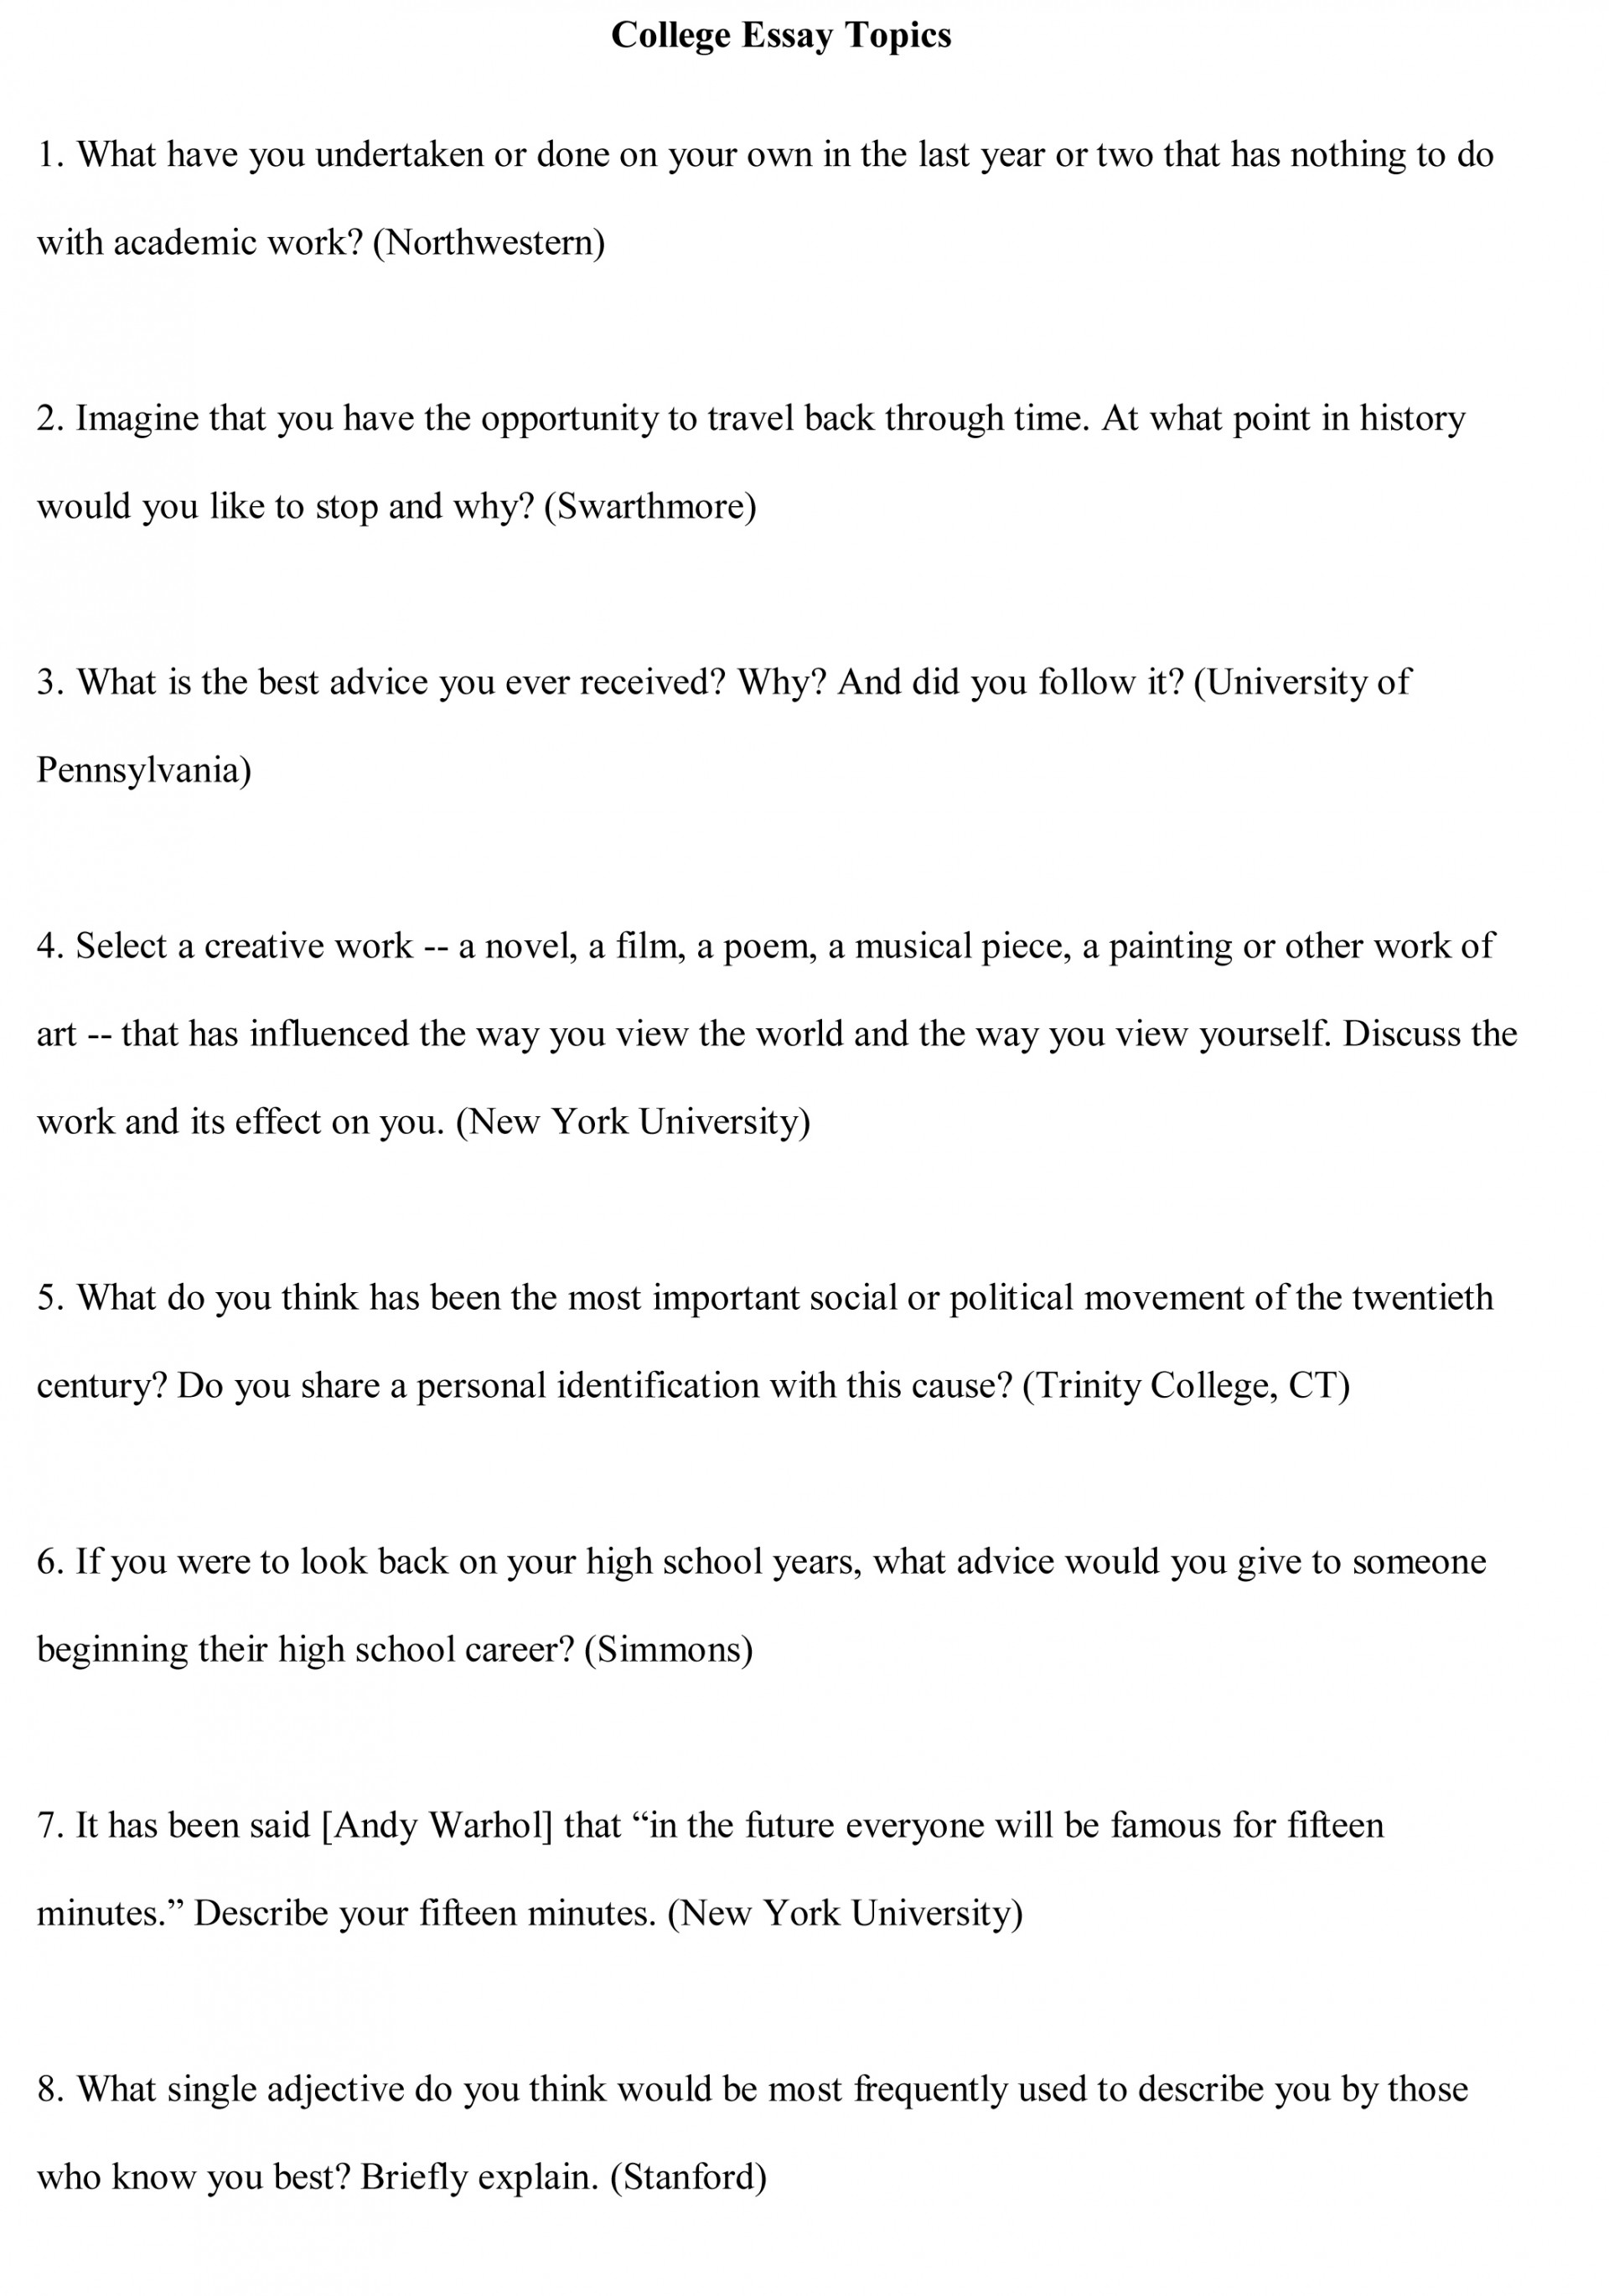 009 College Essay Topics Free Sample1 Prompts Unique Prompt Examples 1 Application 1920